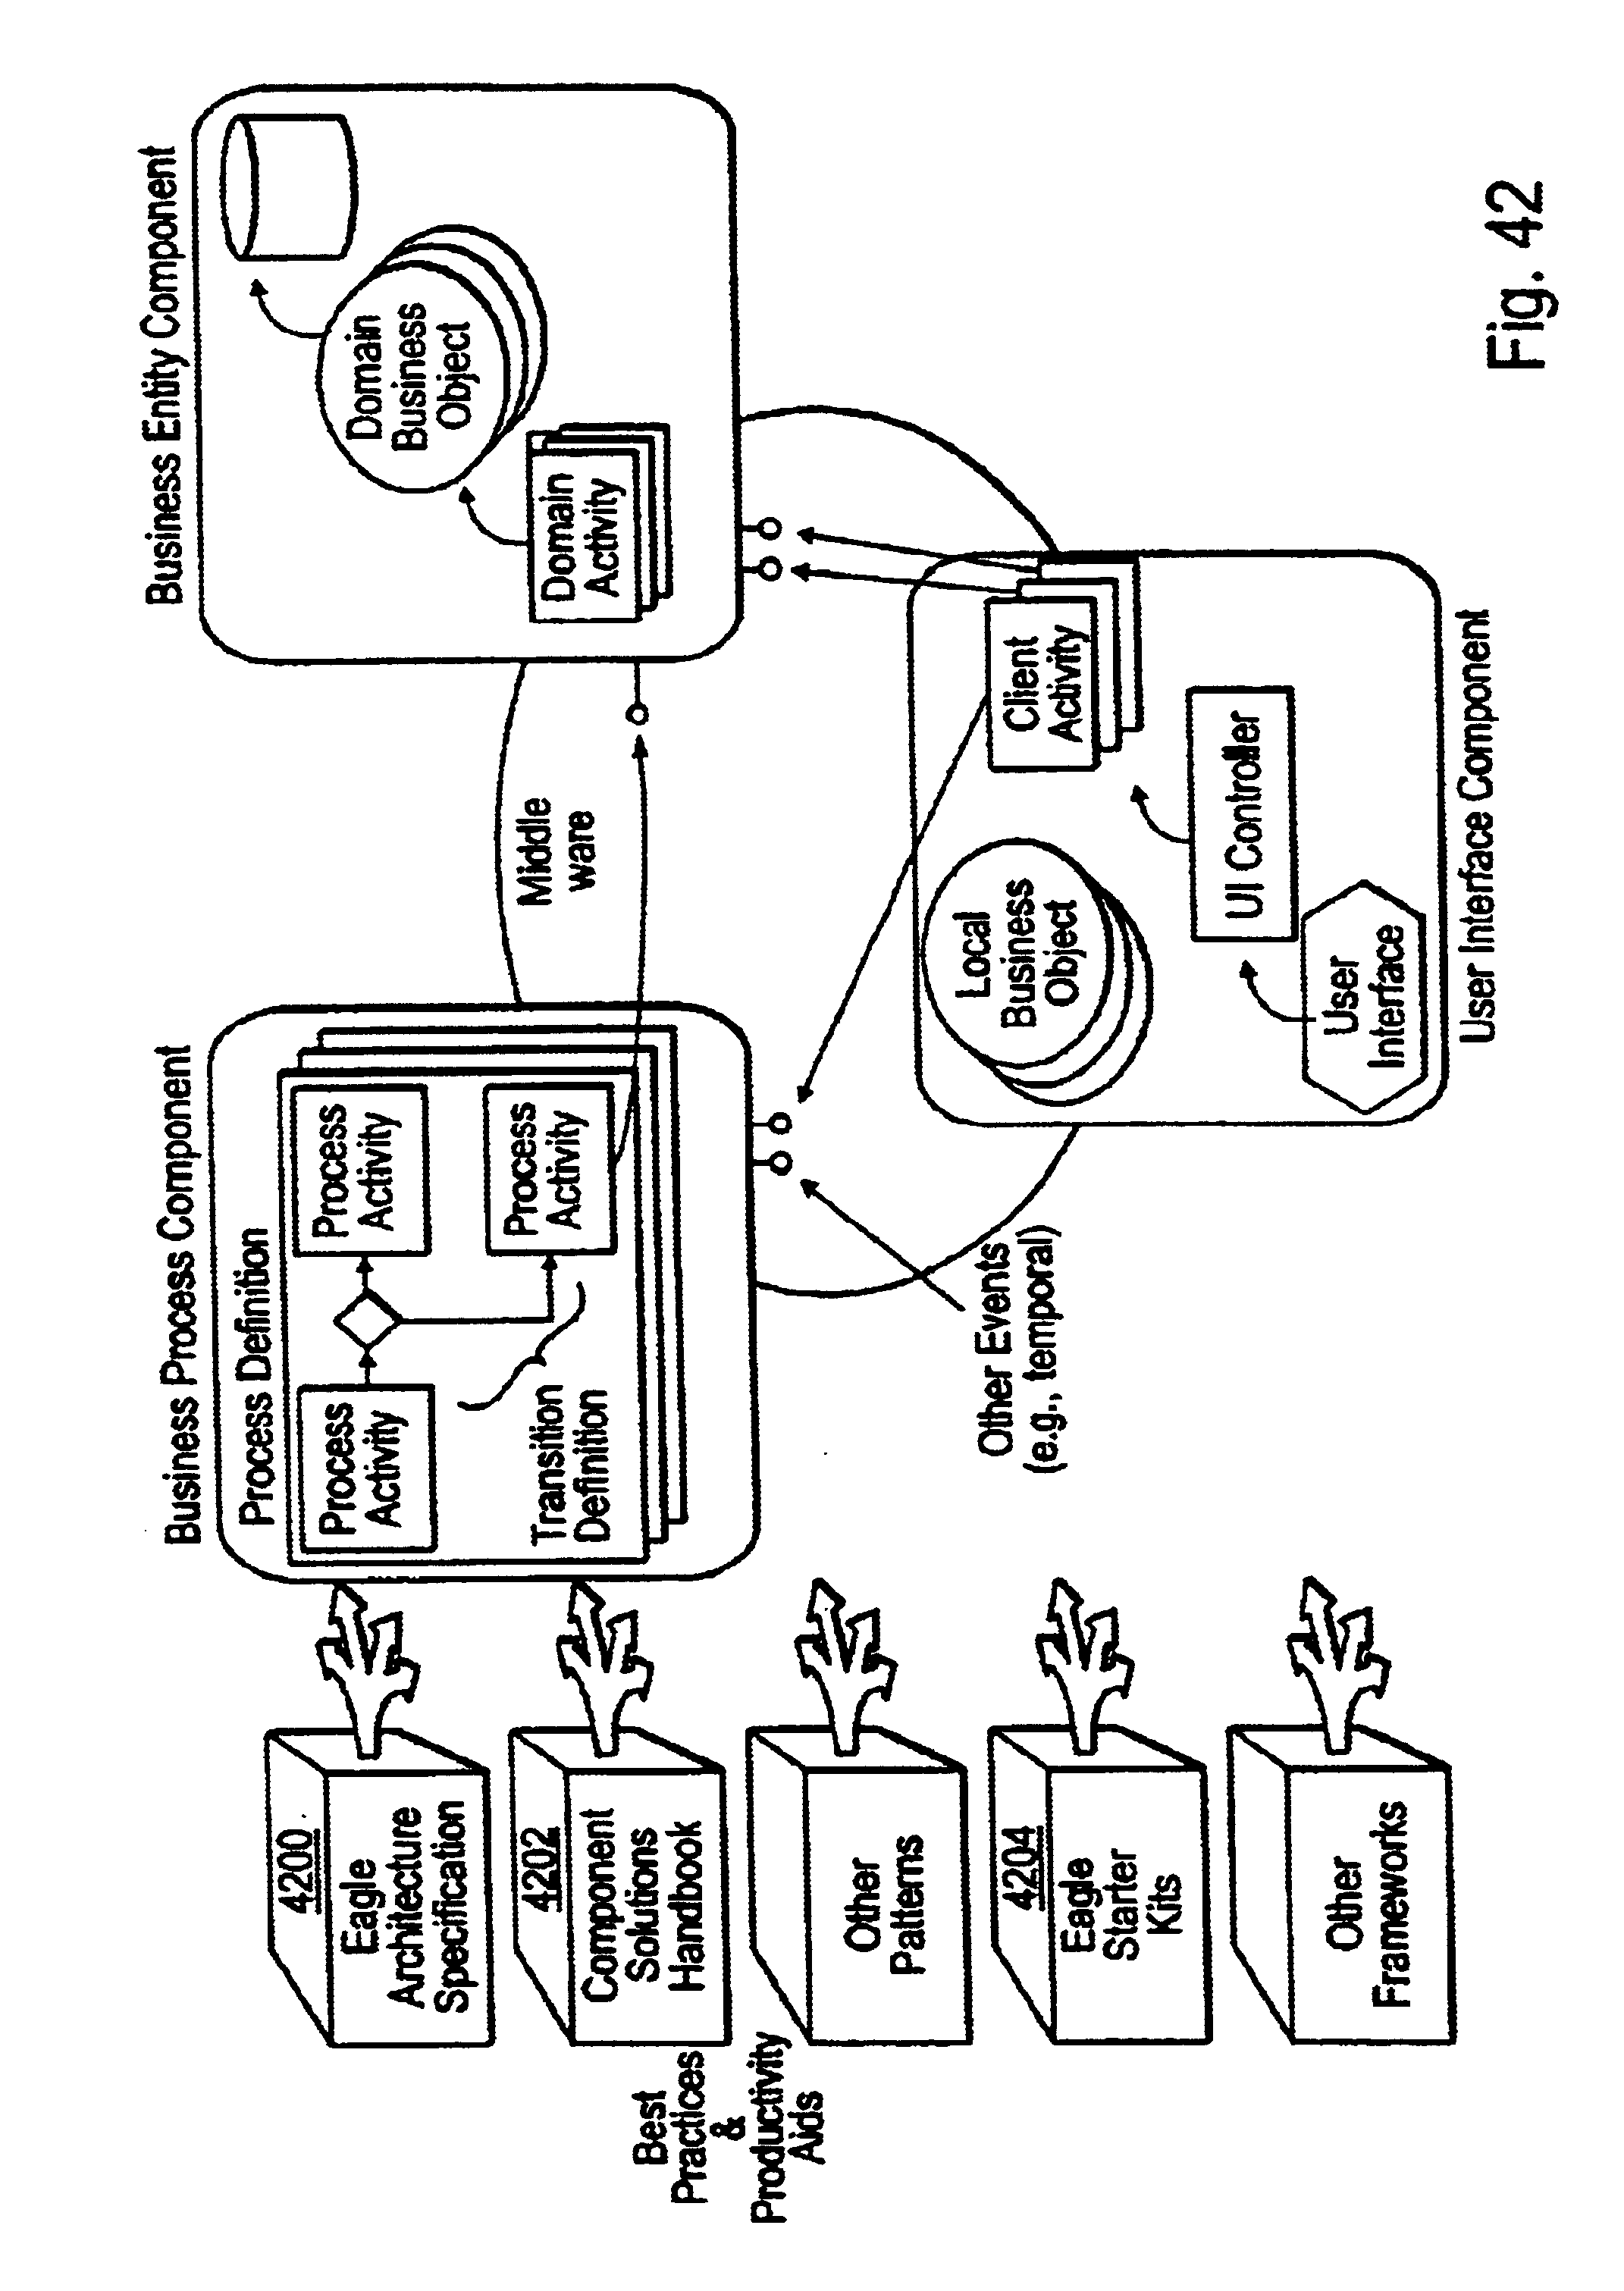 Patent Us 6842906 B1 Fig 42 Block Diagram Simplified Of The Tdm System Architecture Images